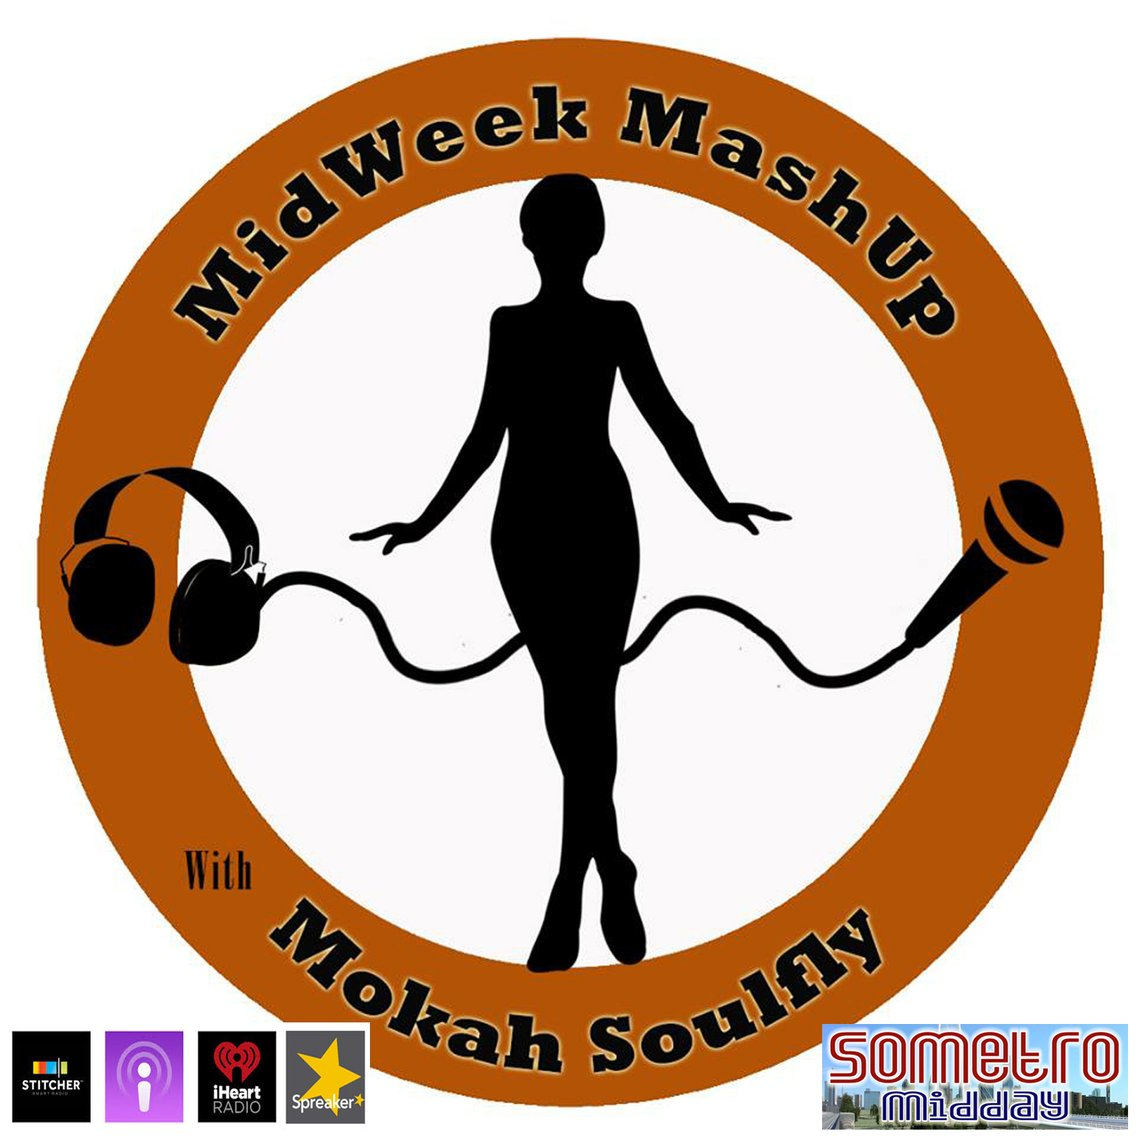 Midweek Mashup hosted by @MokahSoulFly - imagen de portada